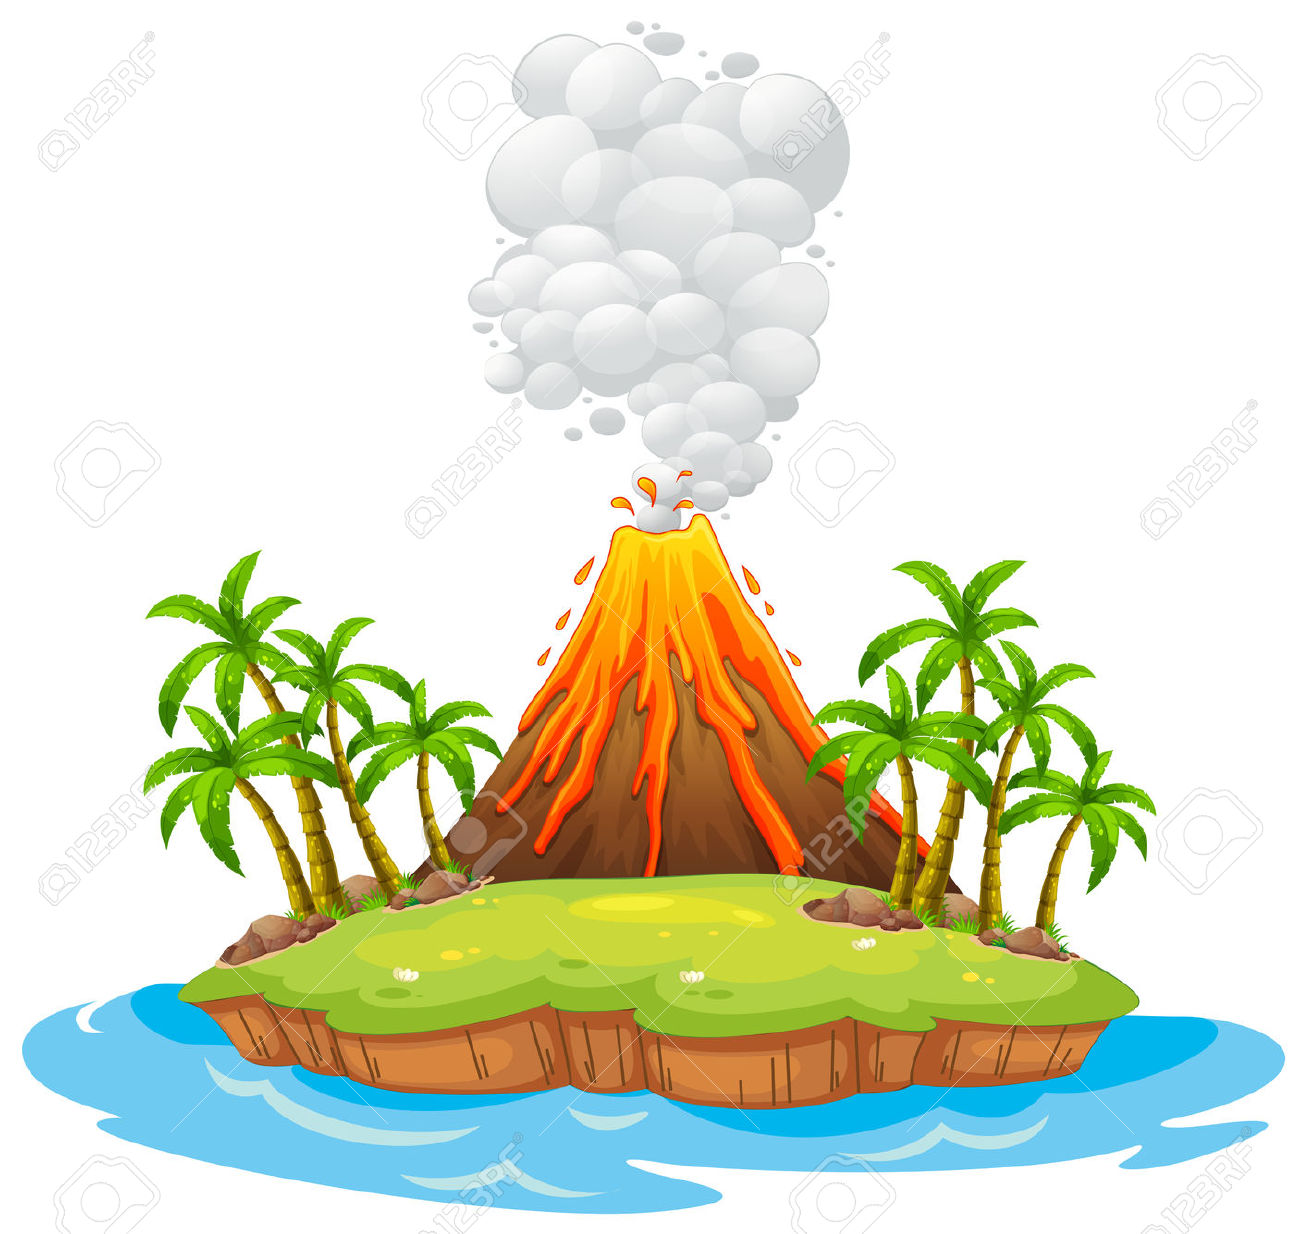 Eruption clipart #5, Download drawings